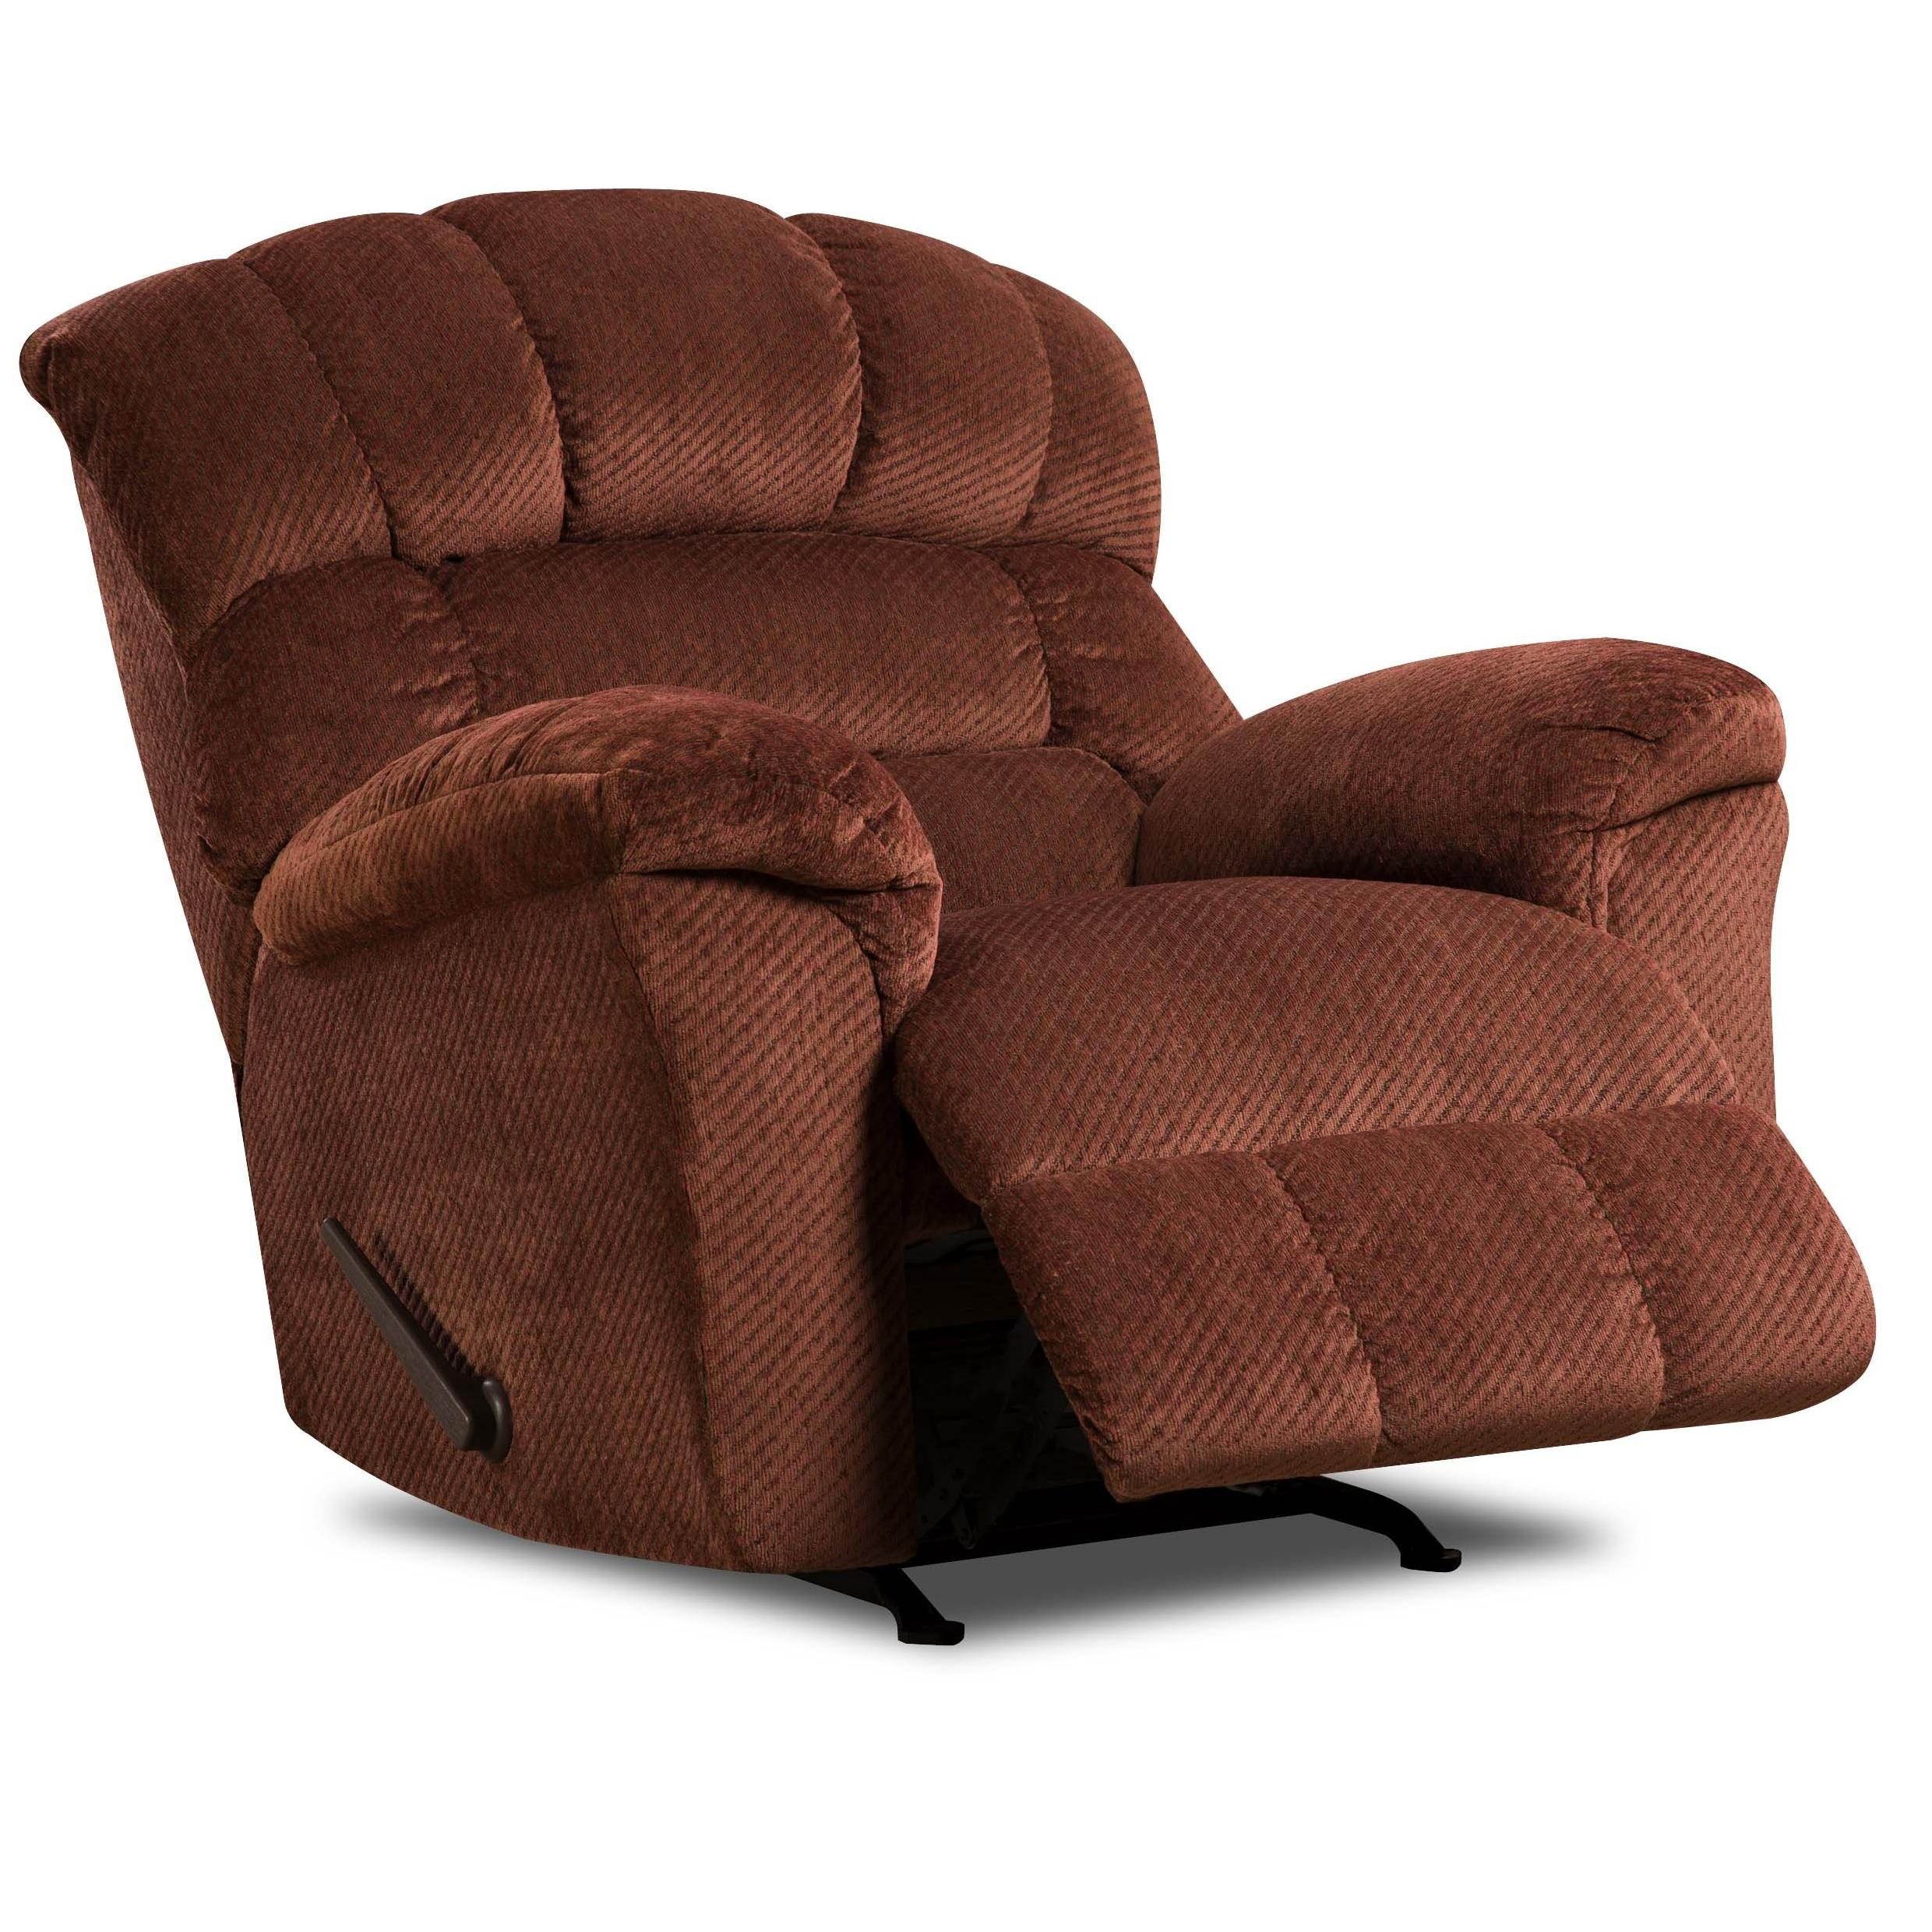 United Furniture Industries 558 Rocker Recliner - Item Number: 588 Recliner Burgandy